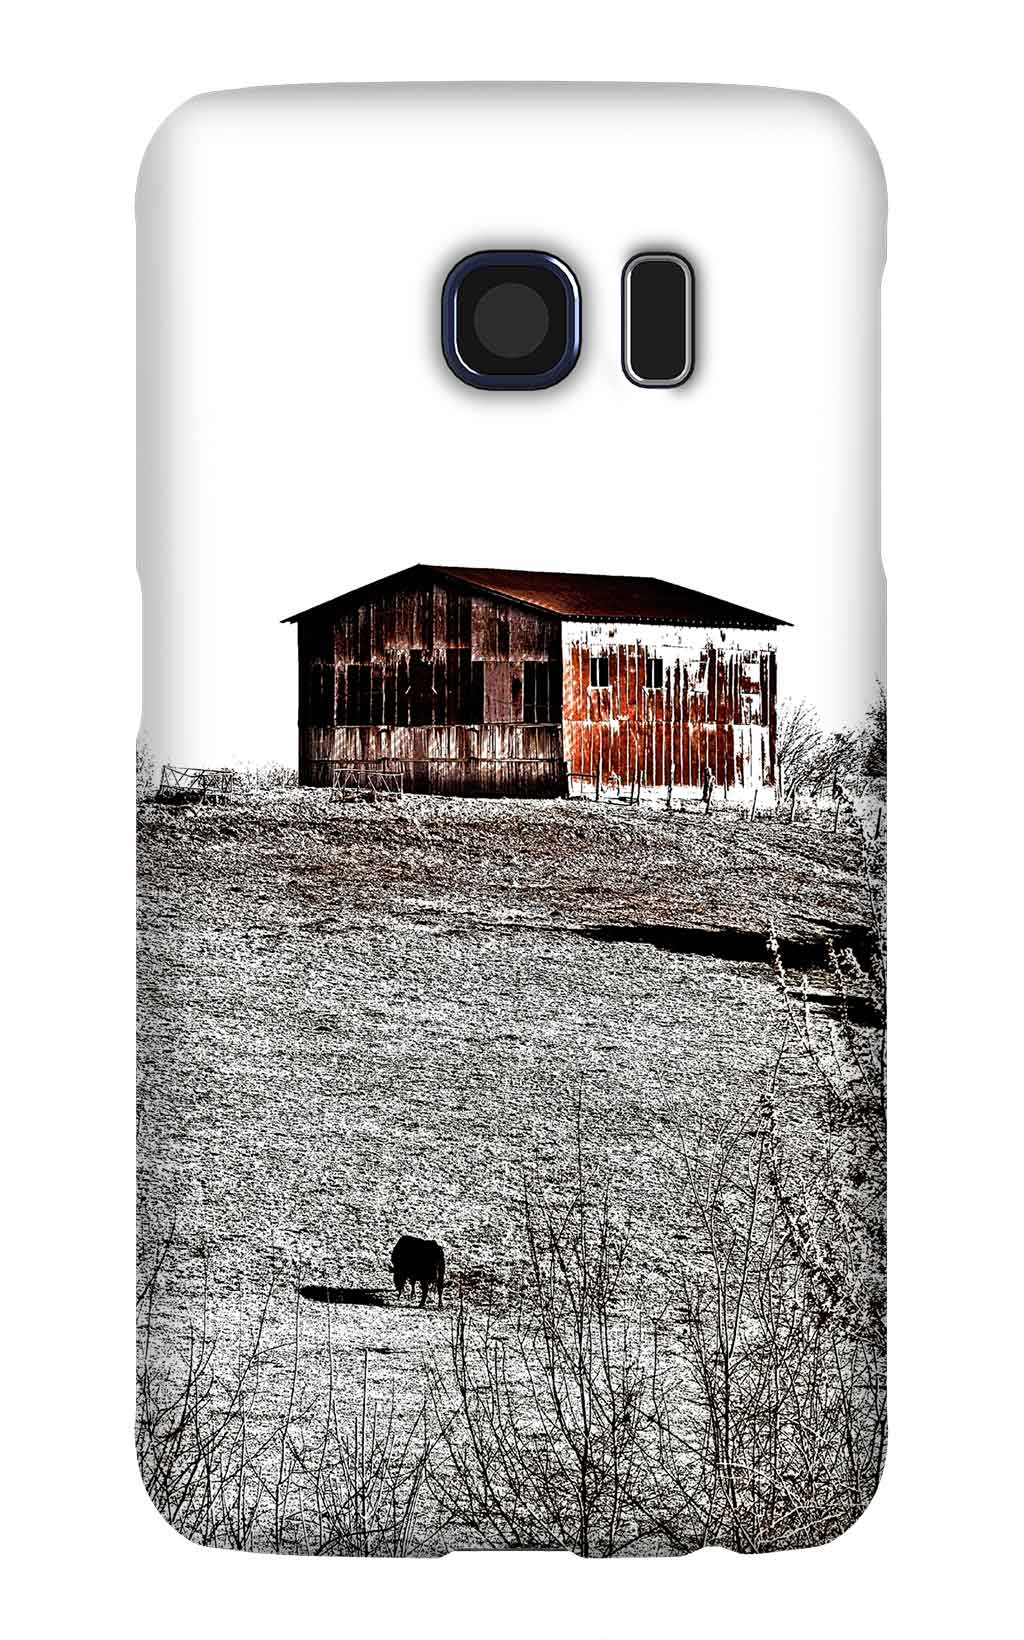 Product, Cellphone Case: The Sentry – Rusty metal barn on a hill and silhouette of cow